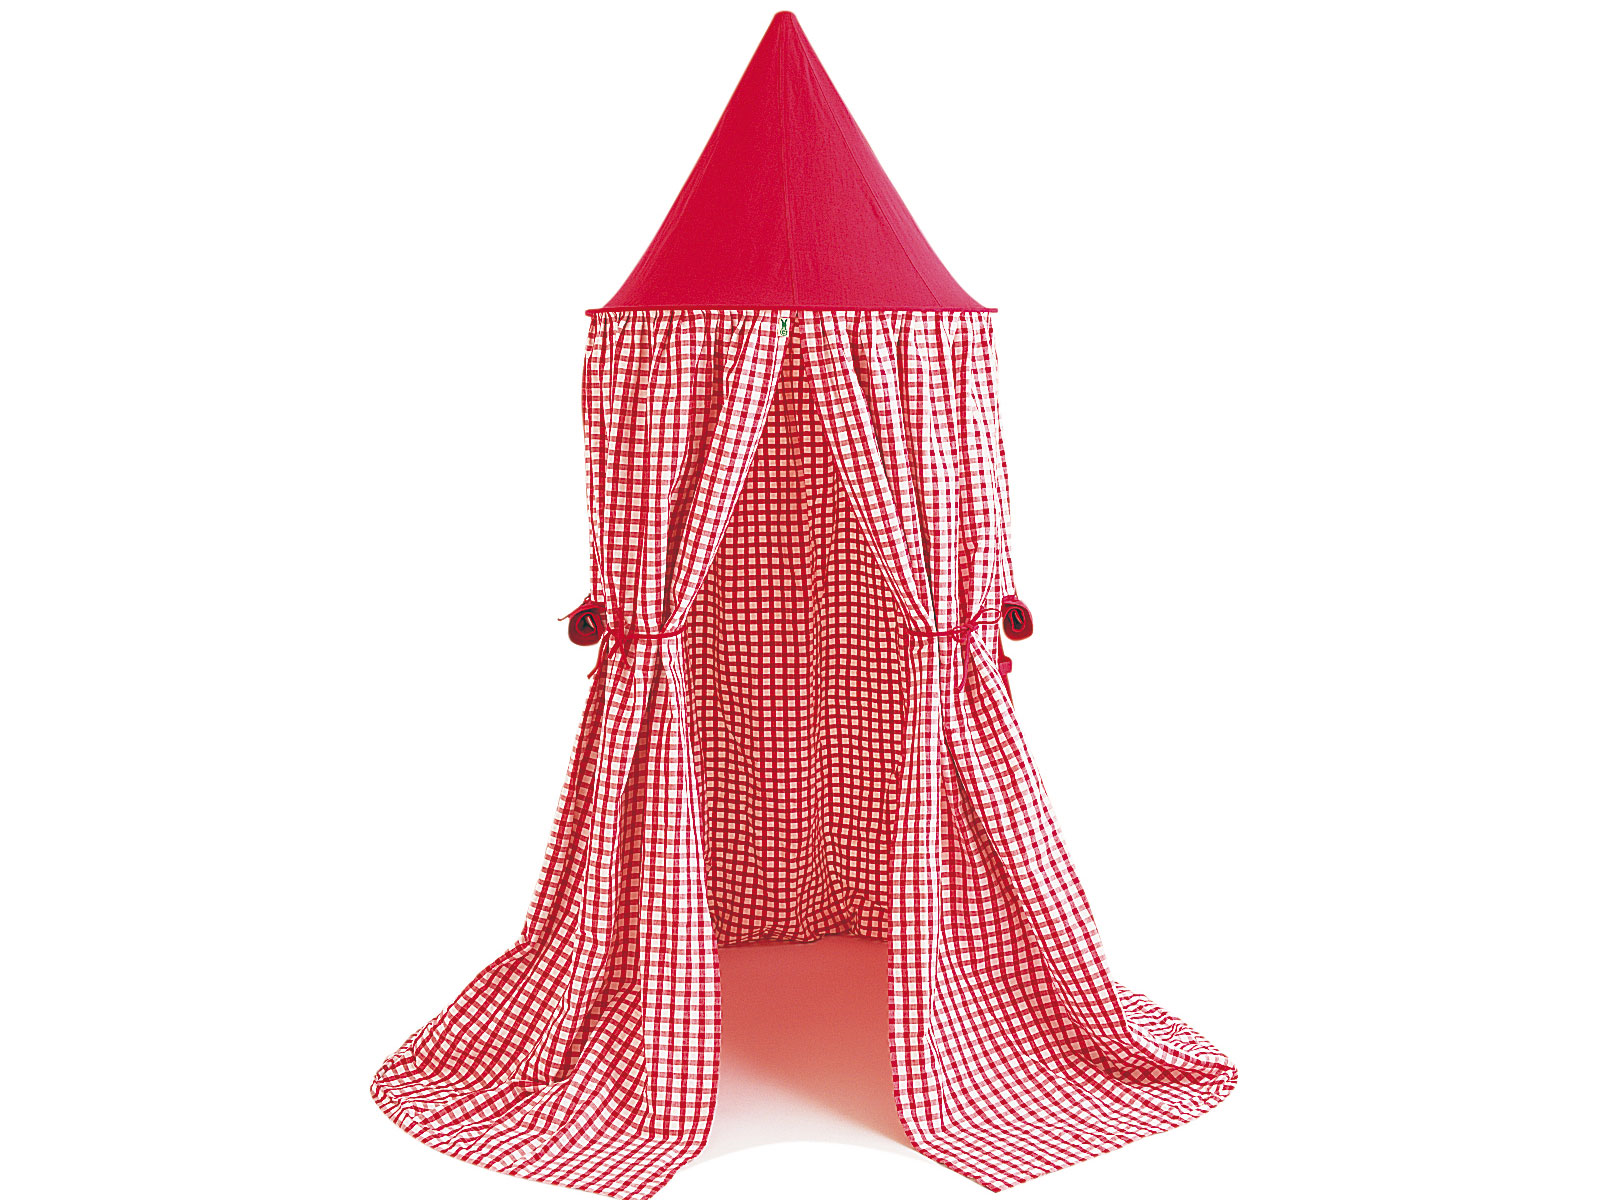 Win Green Handmade Cotton Hanging Tent - Playhouse of Dreams  - 1